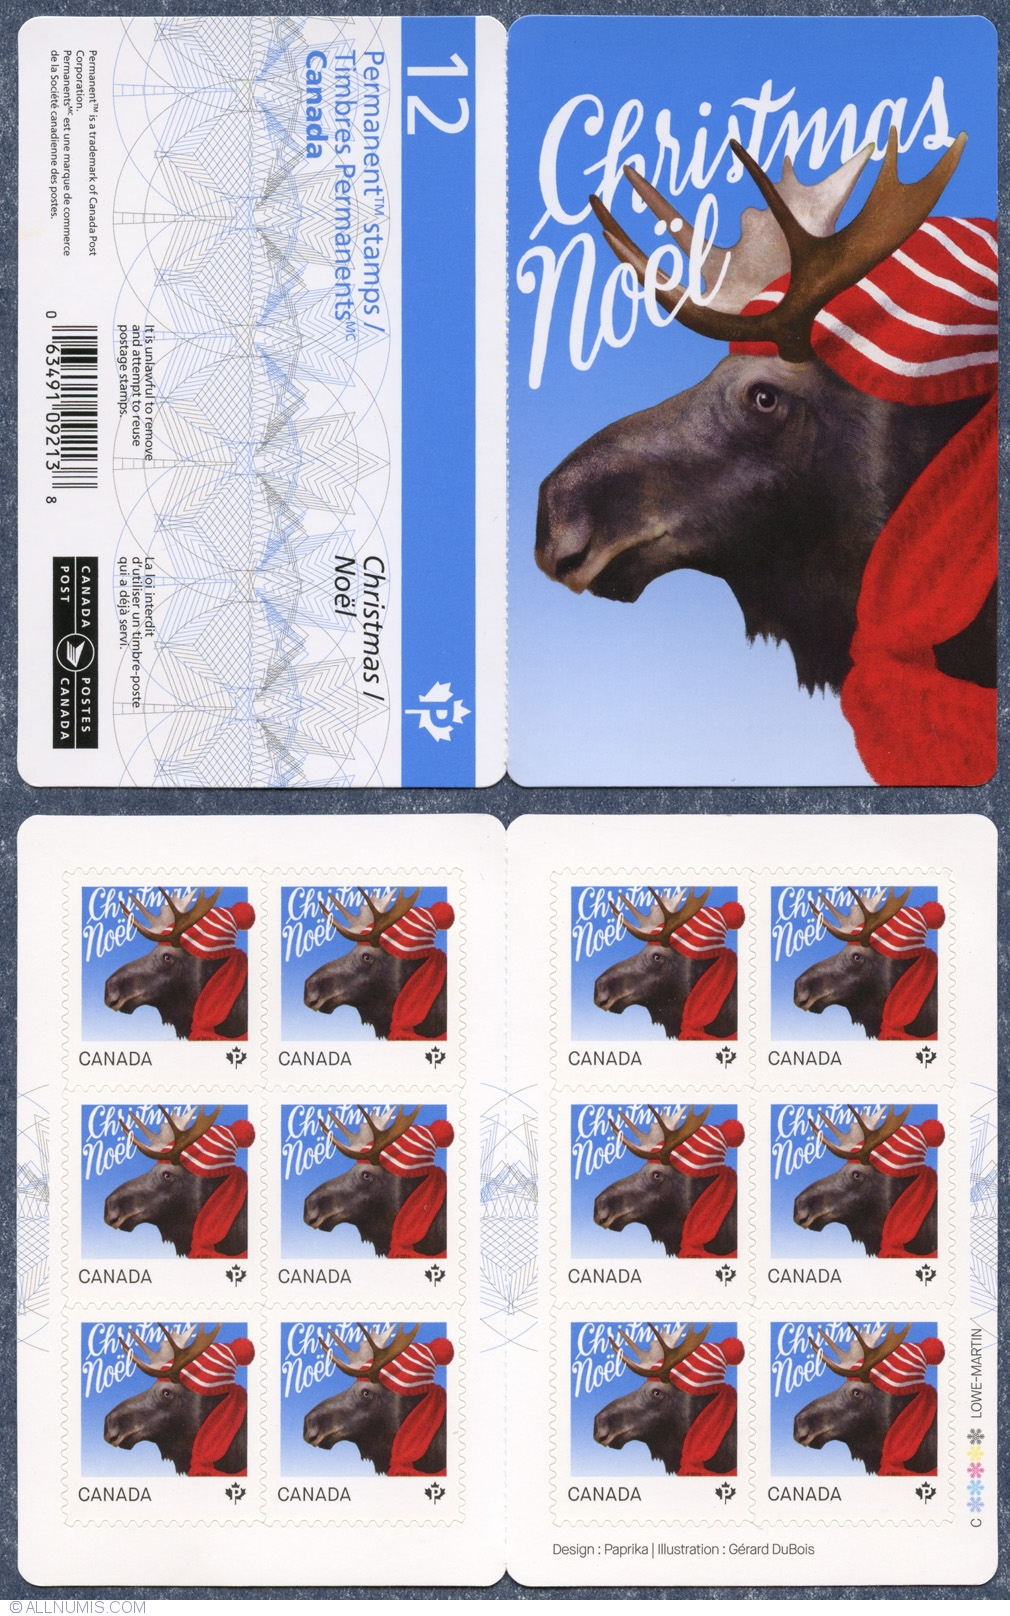 Christmas Stamps 2019.P Christmas Moose Booklet 2015 2010 2019 Canada Stamp